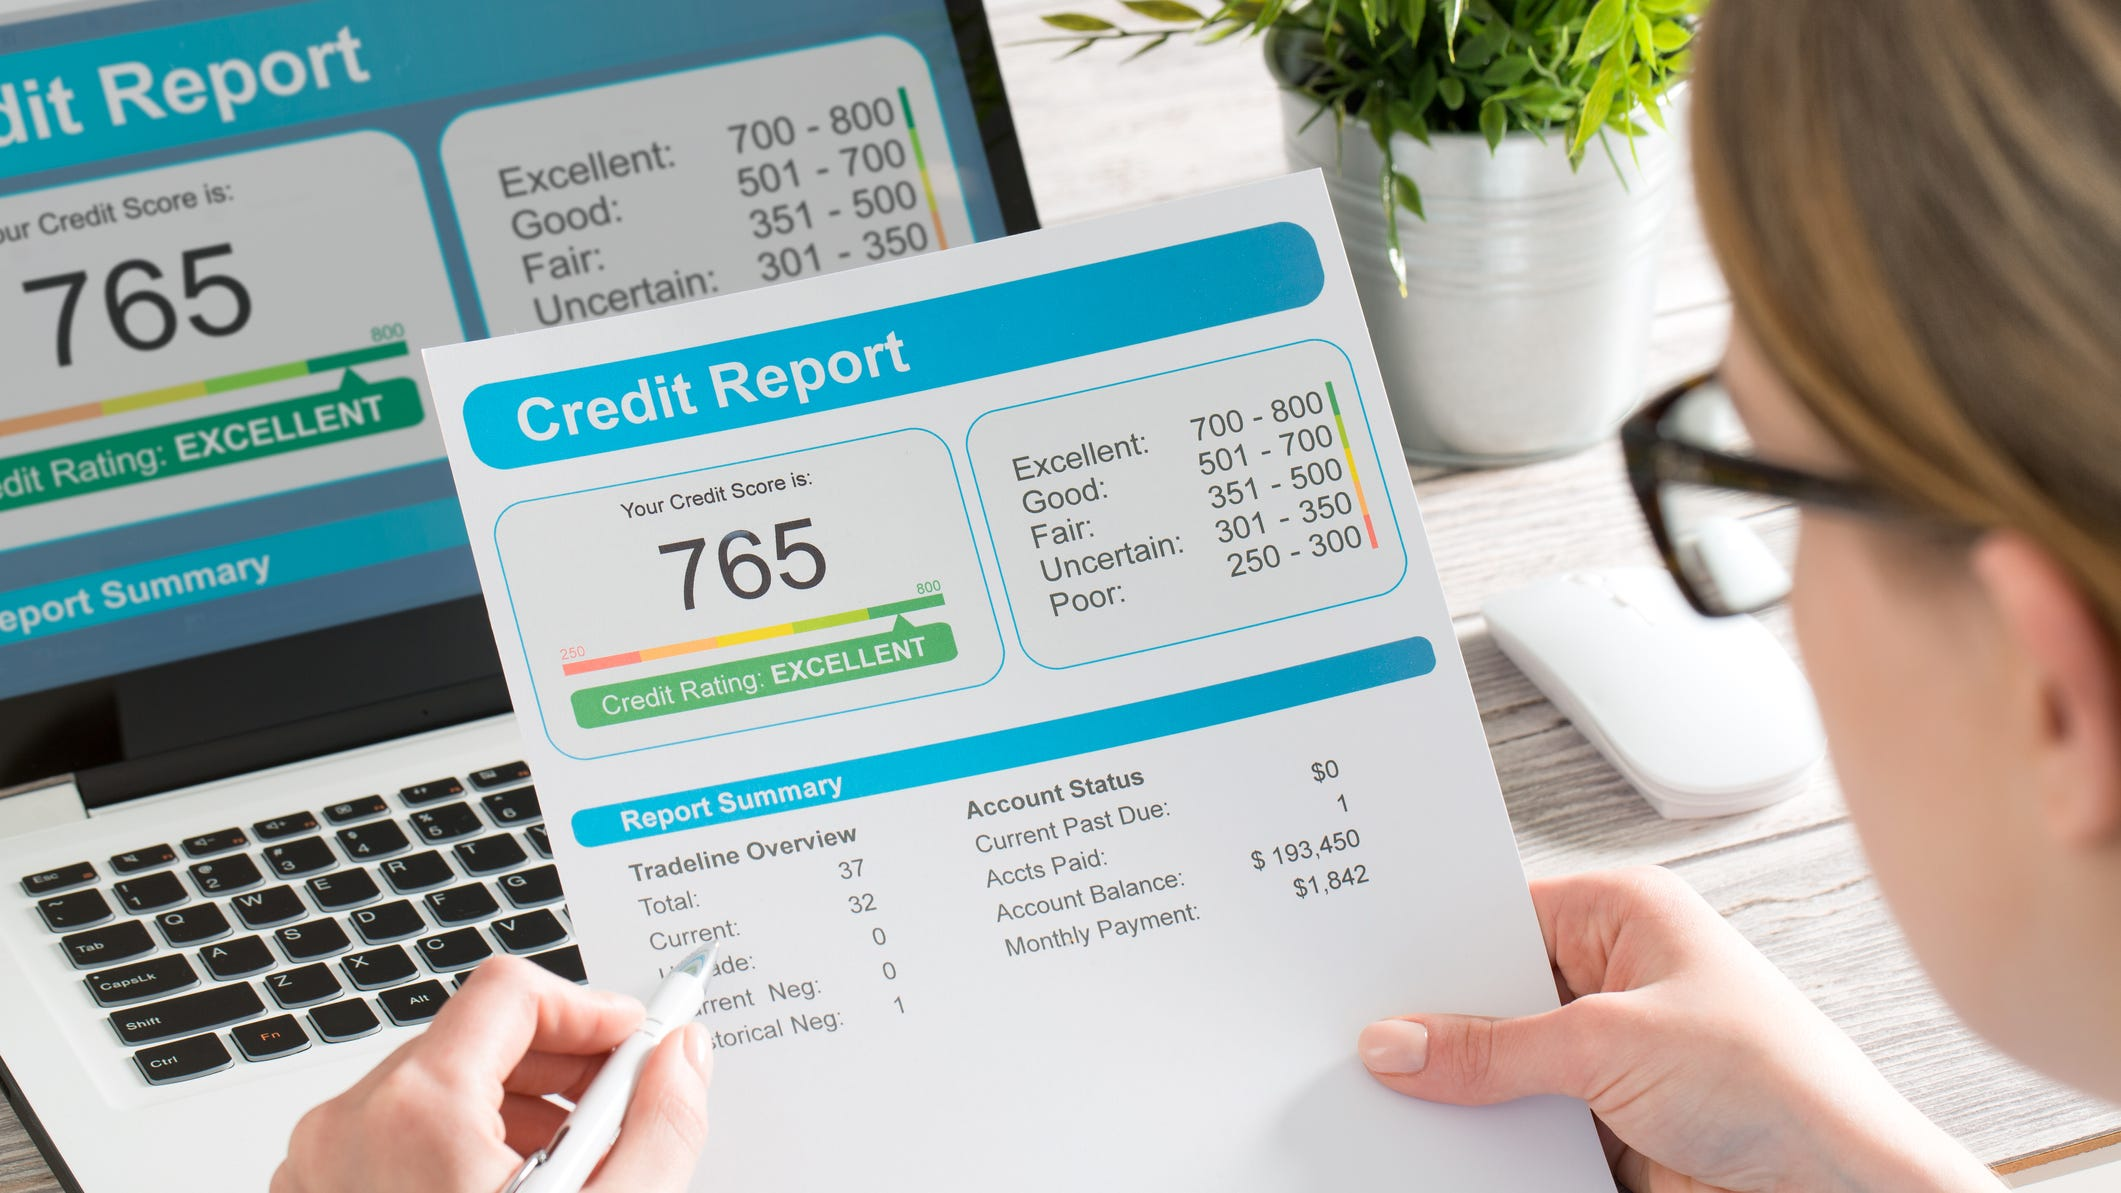 Credit Score hit due to pandemic